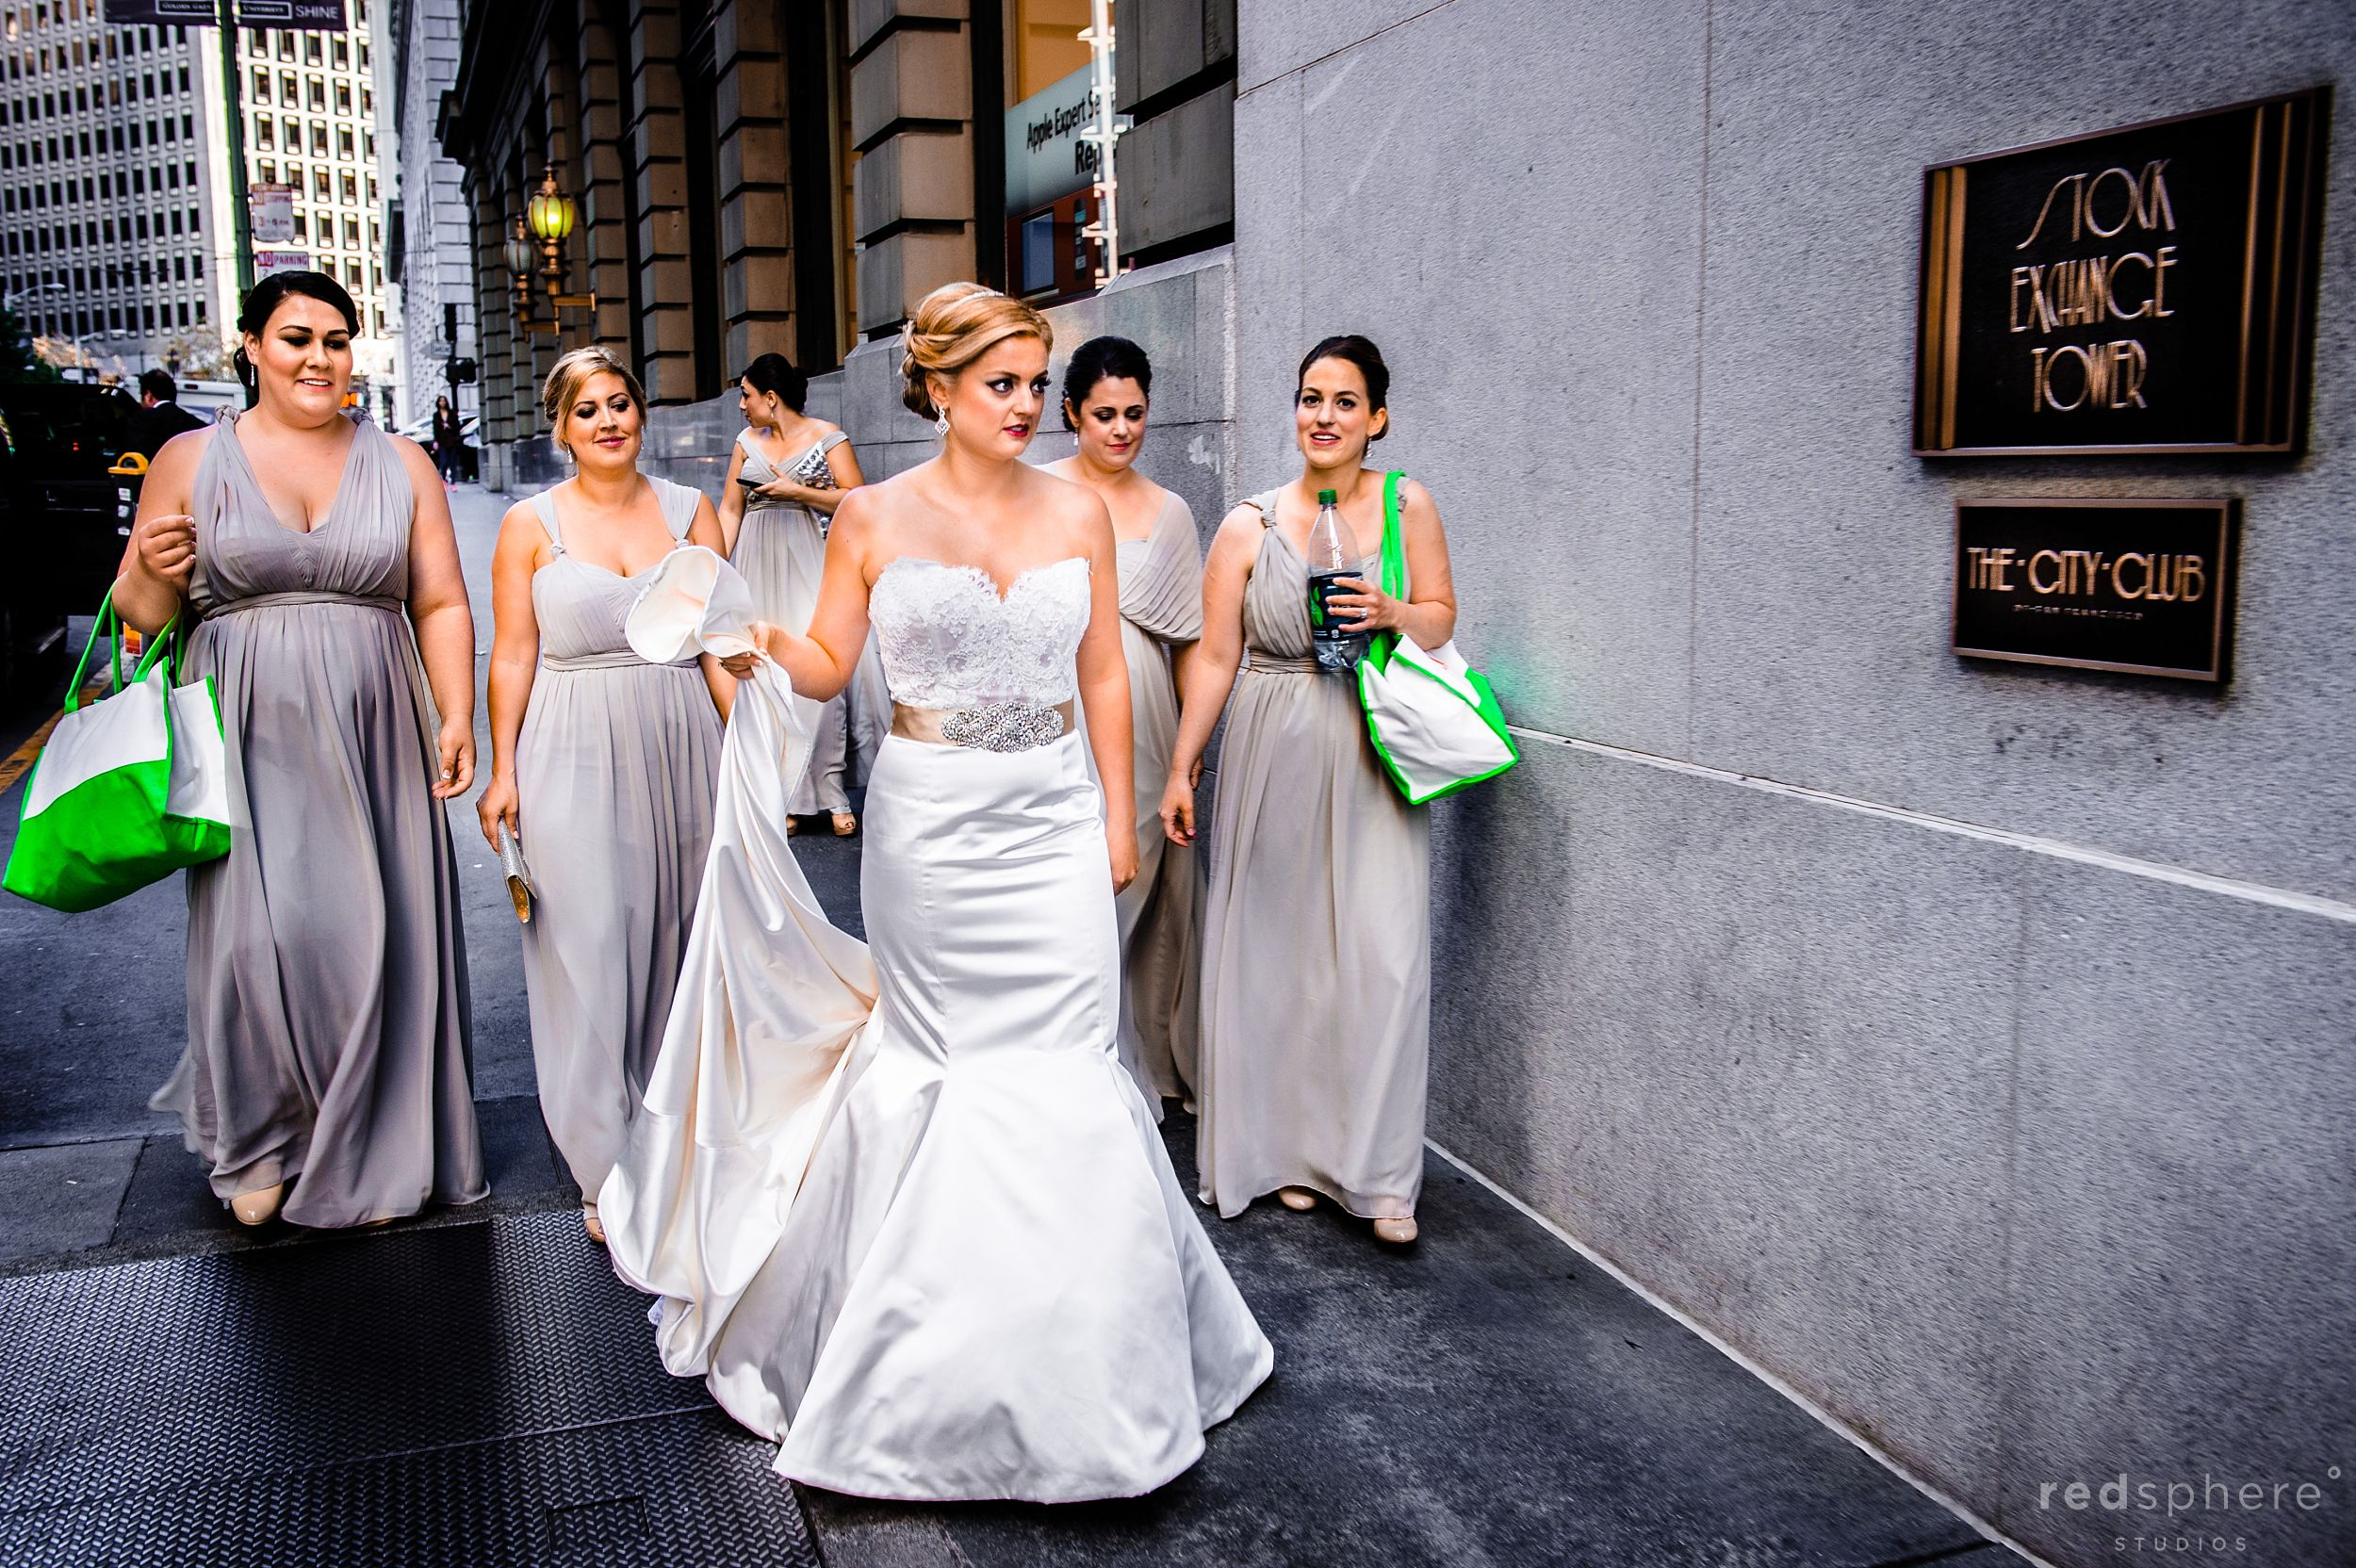 Bride Walking Towards City Club Wedding Followed by Bridesmaids'